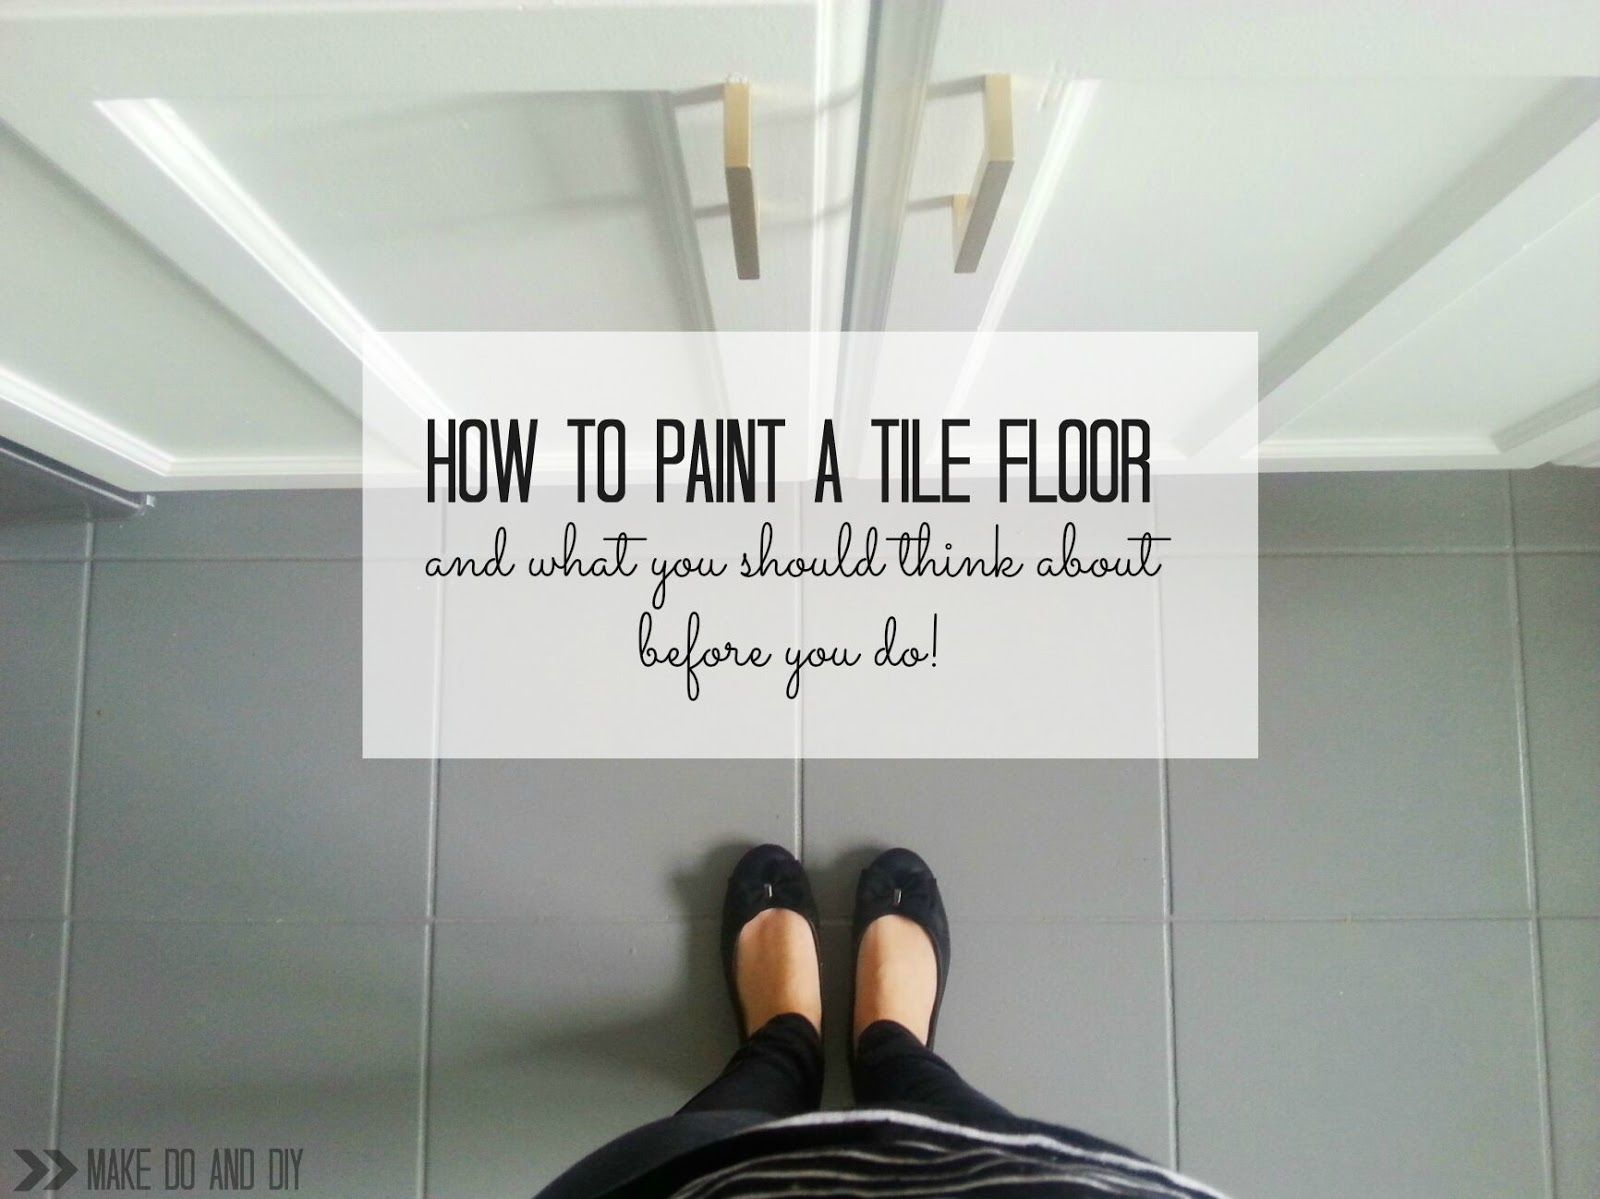 How to paint a tile floor and what you should think about before how to paint a tile floor and what you should think about before you do dailygadgetfo Image collections